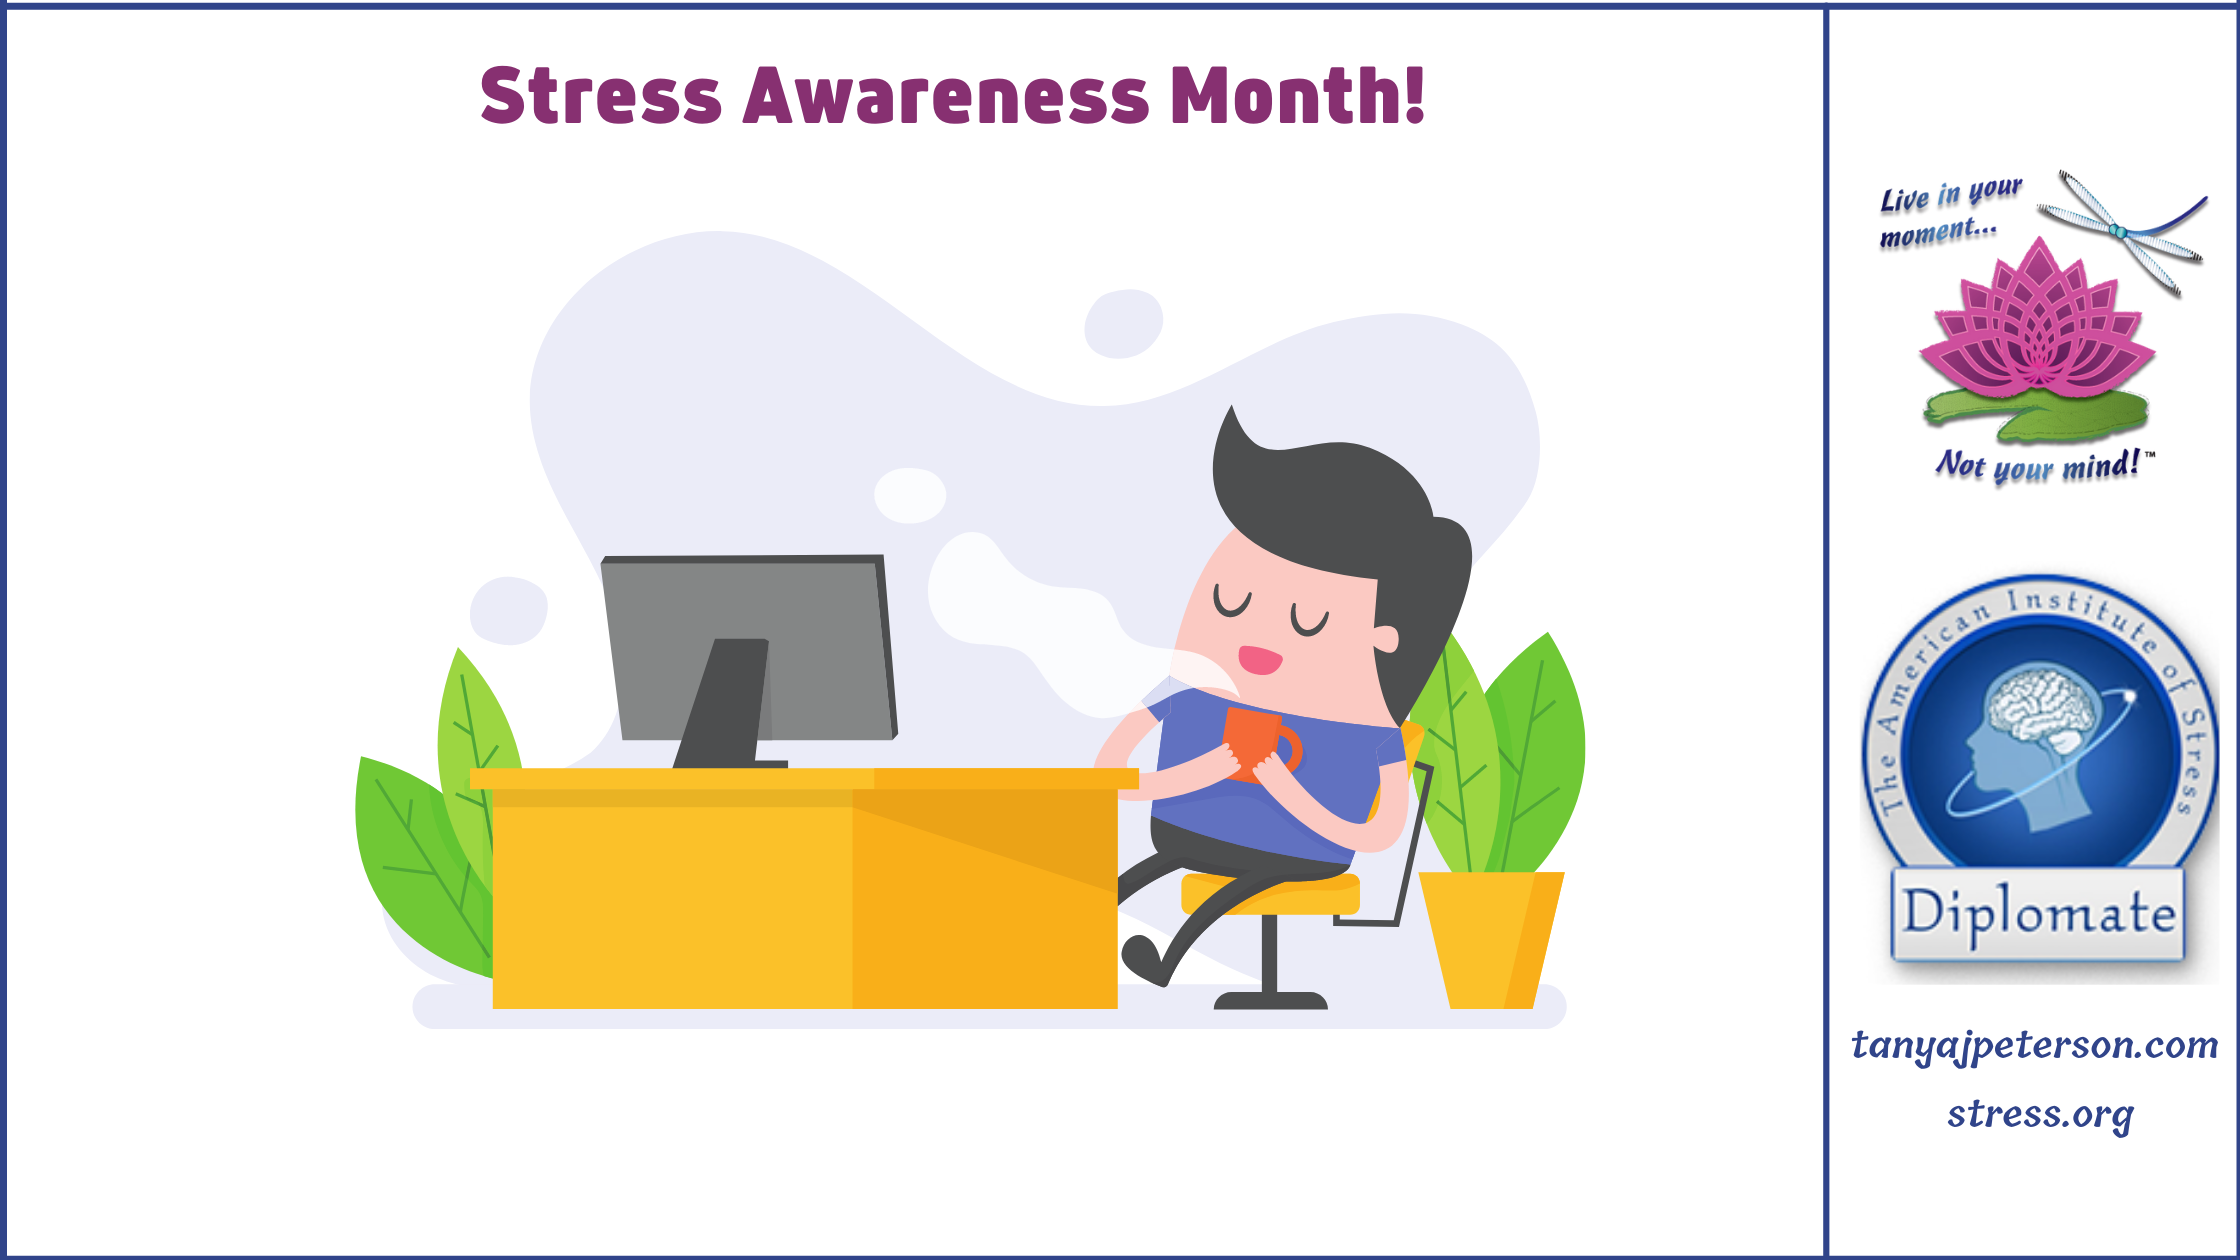 Constant Rushing Causes Stress And Keeps The Body's Fight-or-flight Response Activated. This Is Damaging To Total Health, Wellbeing. Take Minibreaks To Reset.